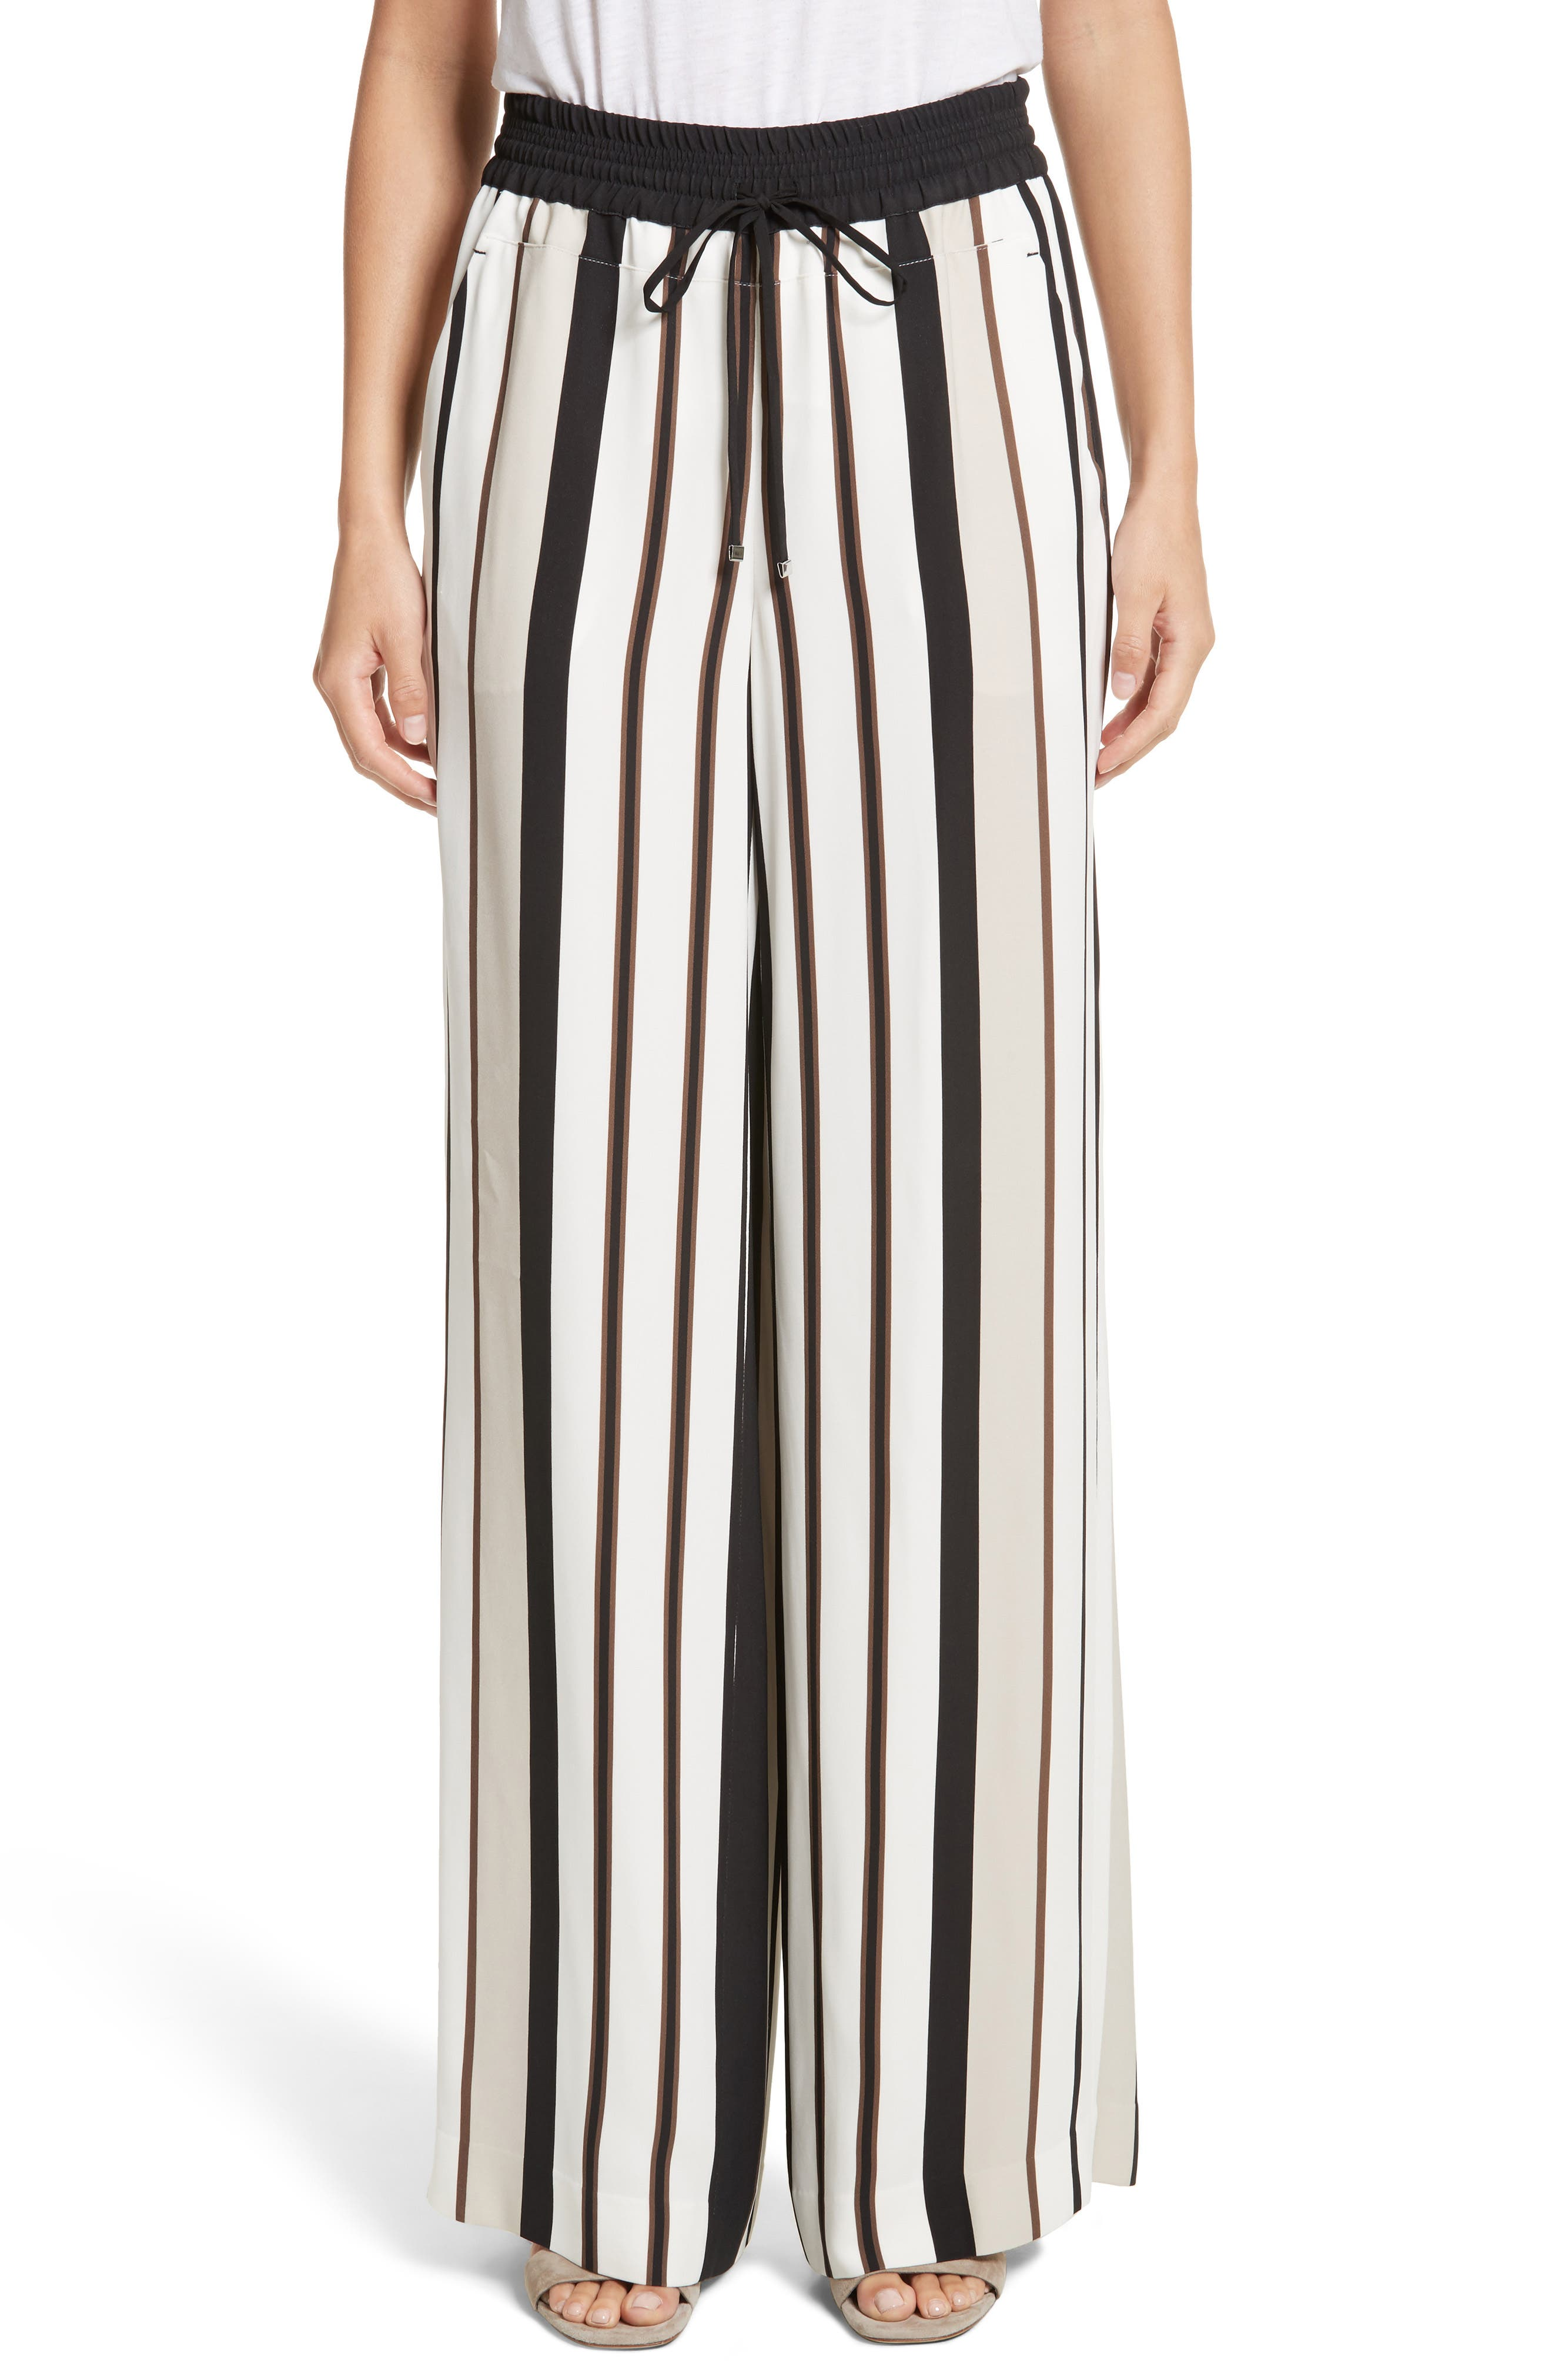 LAFAYETTE 148 NEW YORK Allen Legacy Stripe Drape Cloth Pants, Main, color, 001